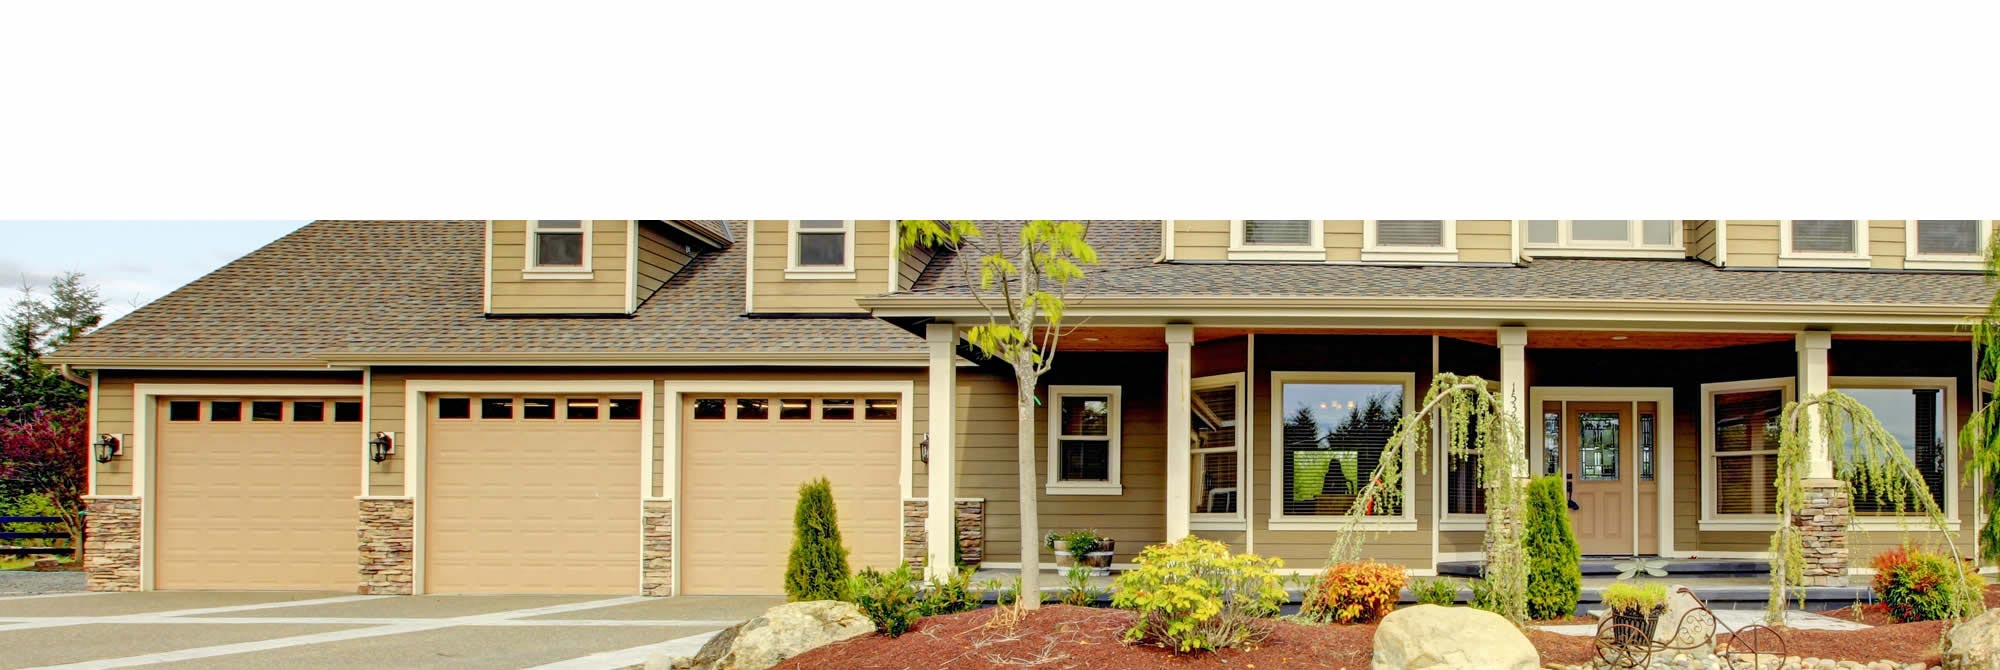 Garage Door Repair Everett Waeverett Garage Door Repair The